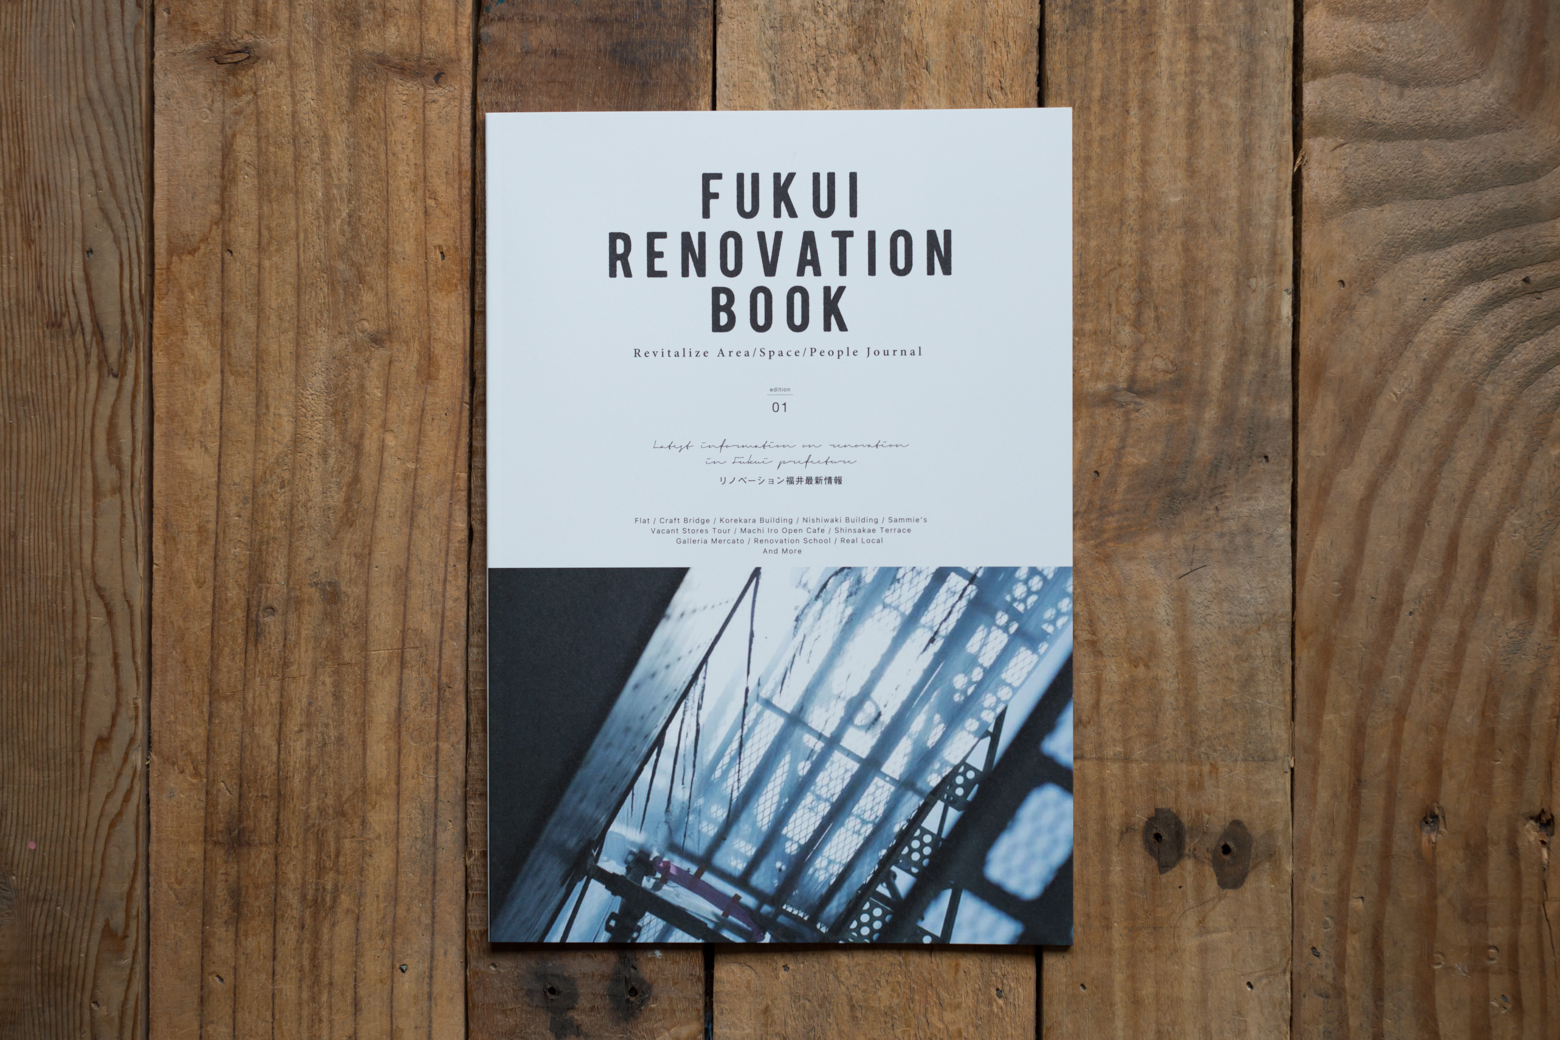 FUKUI RENOVATION BOOK